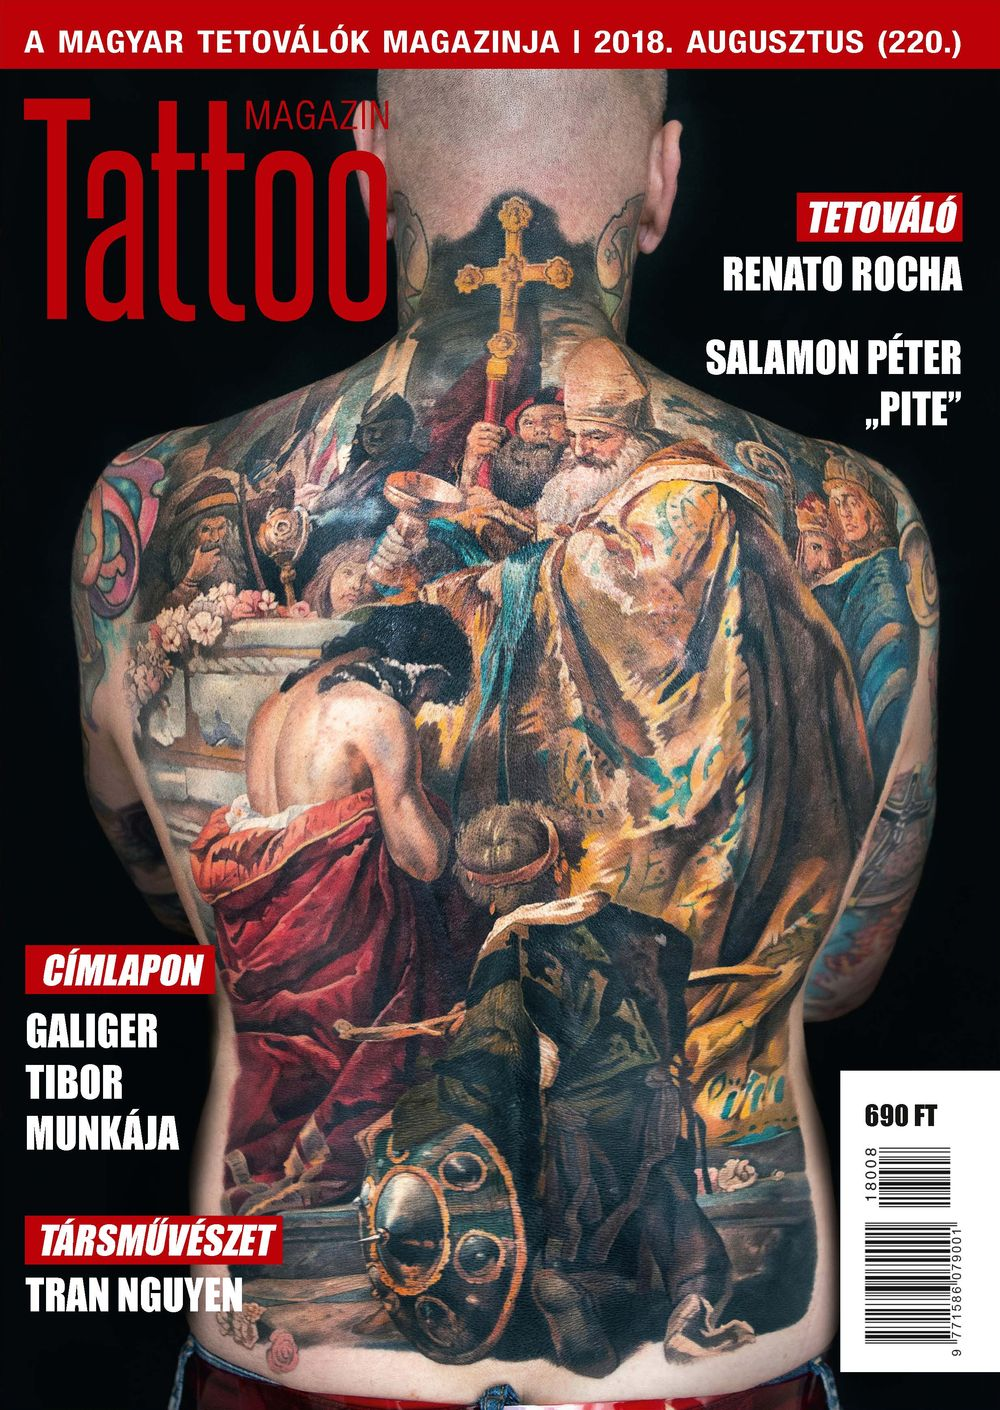 Tattoo Magazin Nr 220